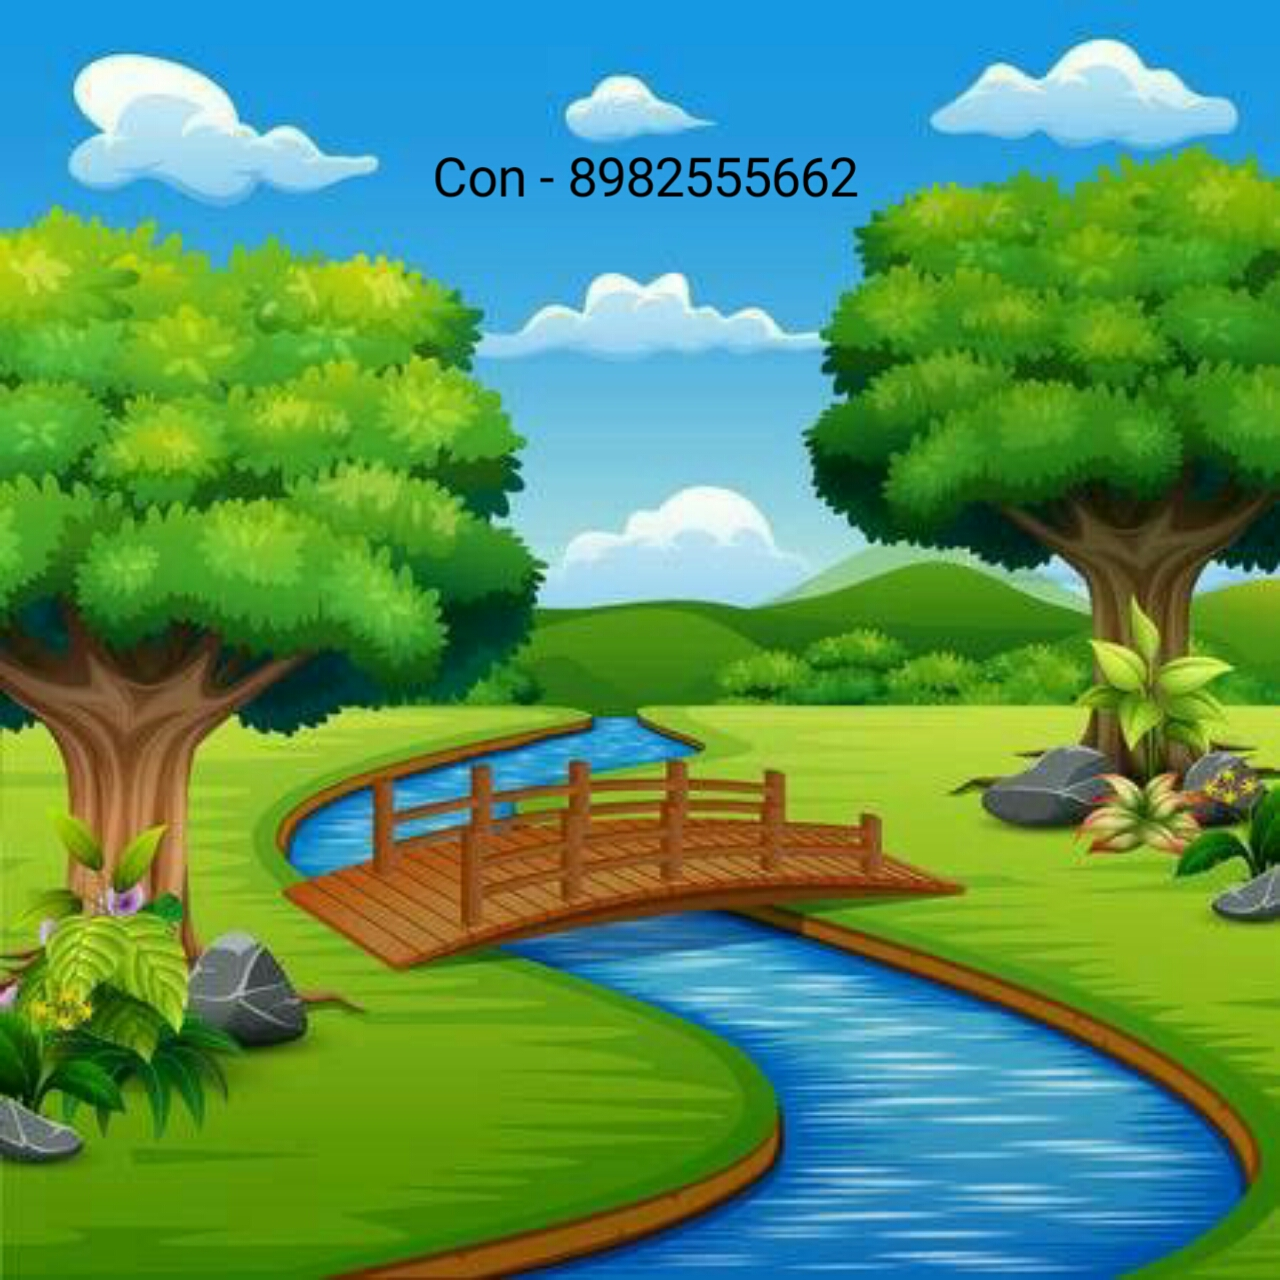 Play School Wall Painting Nursery School Wall Painting Artist